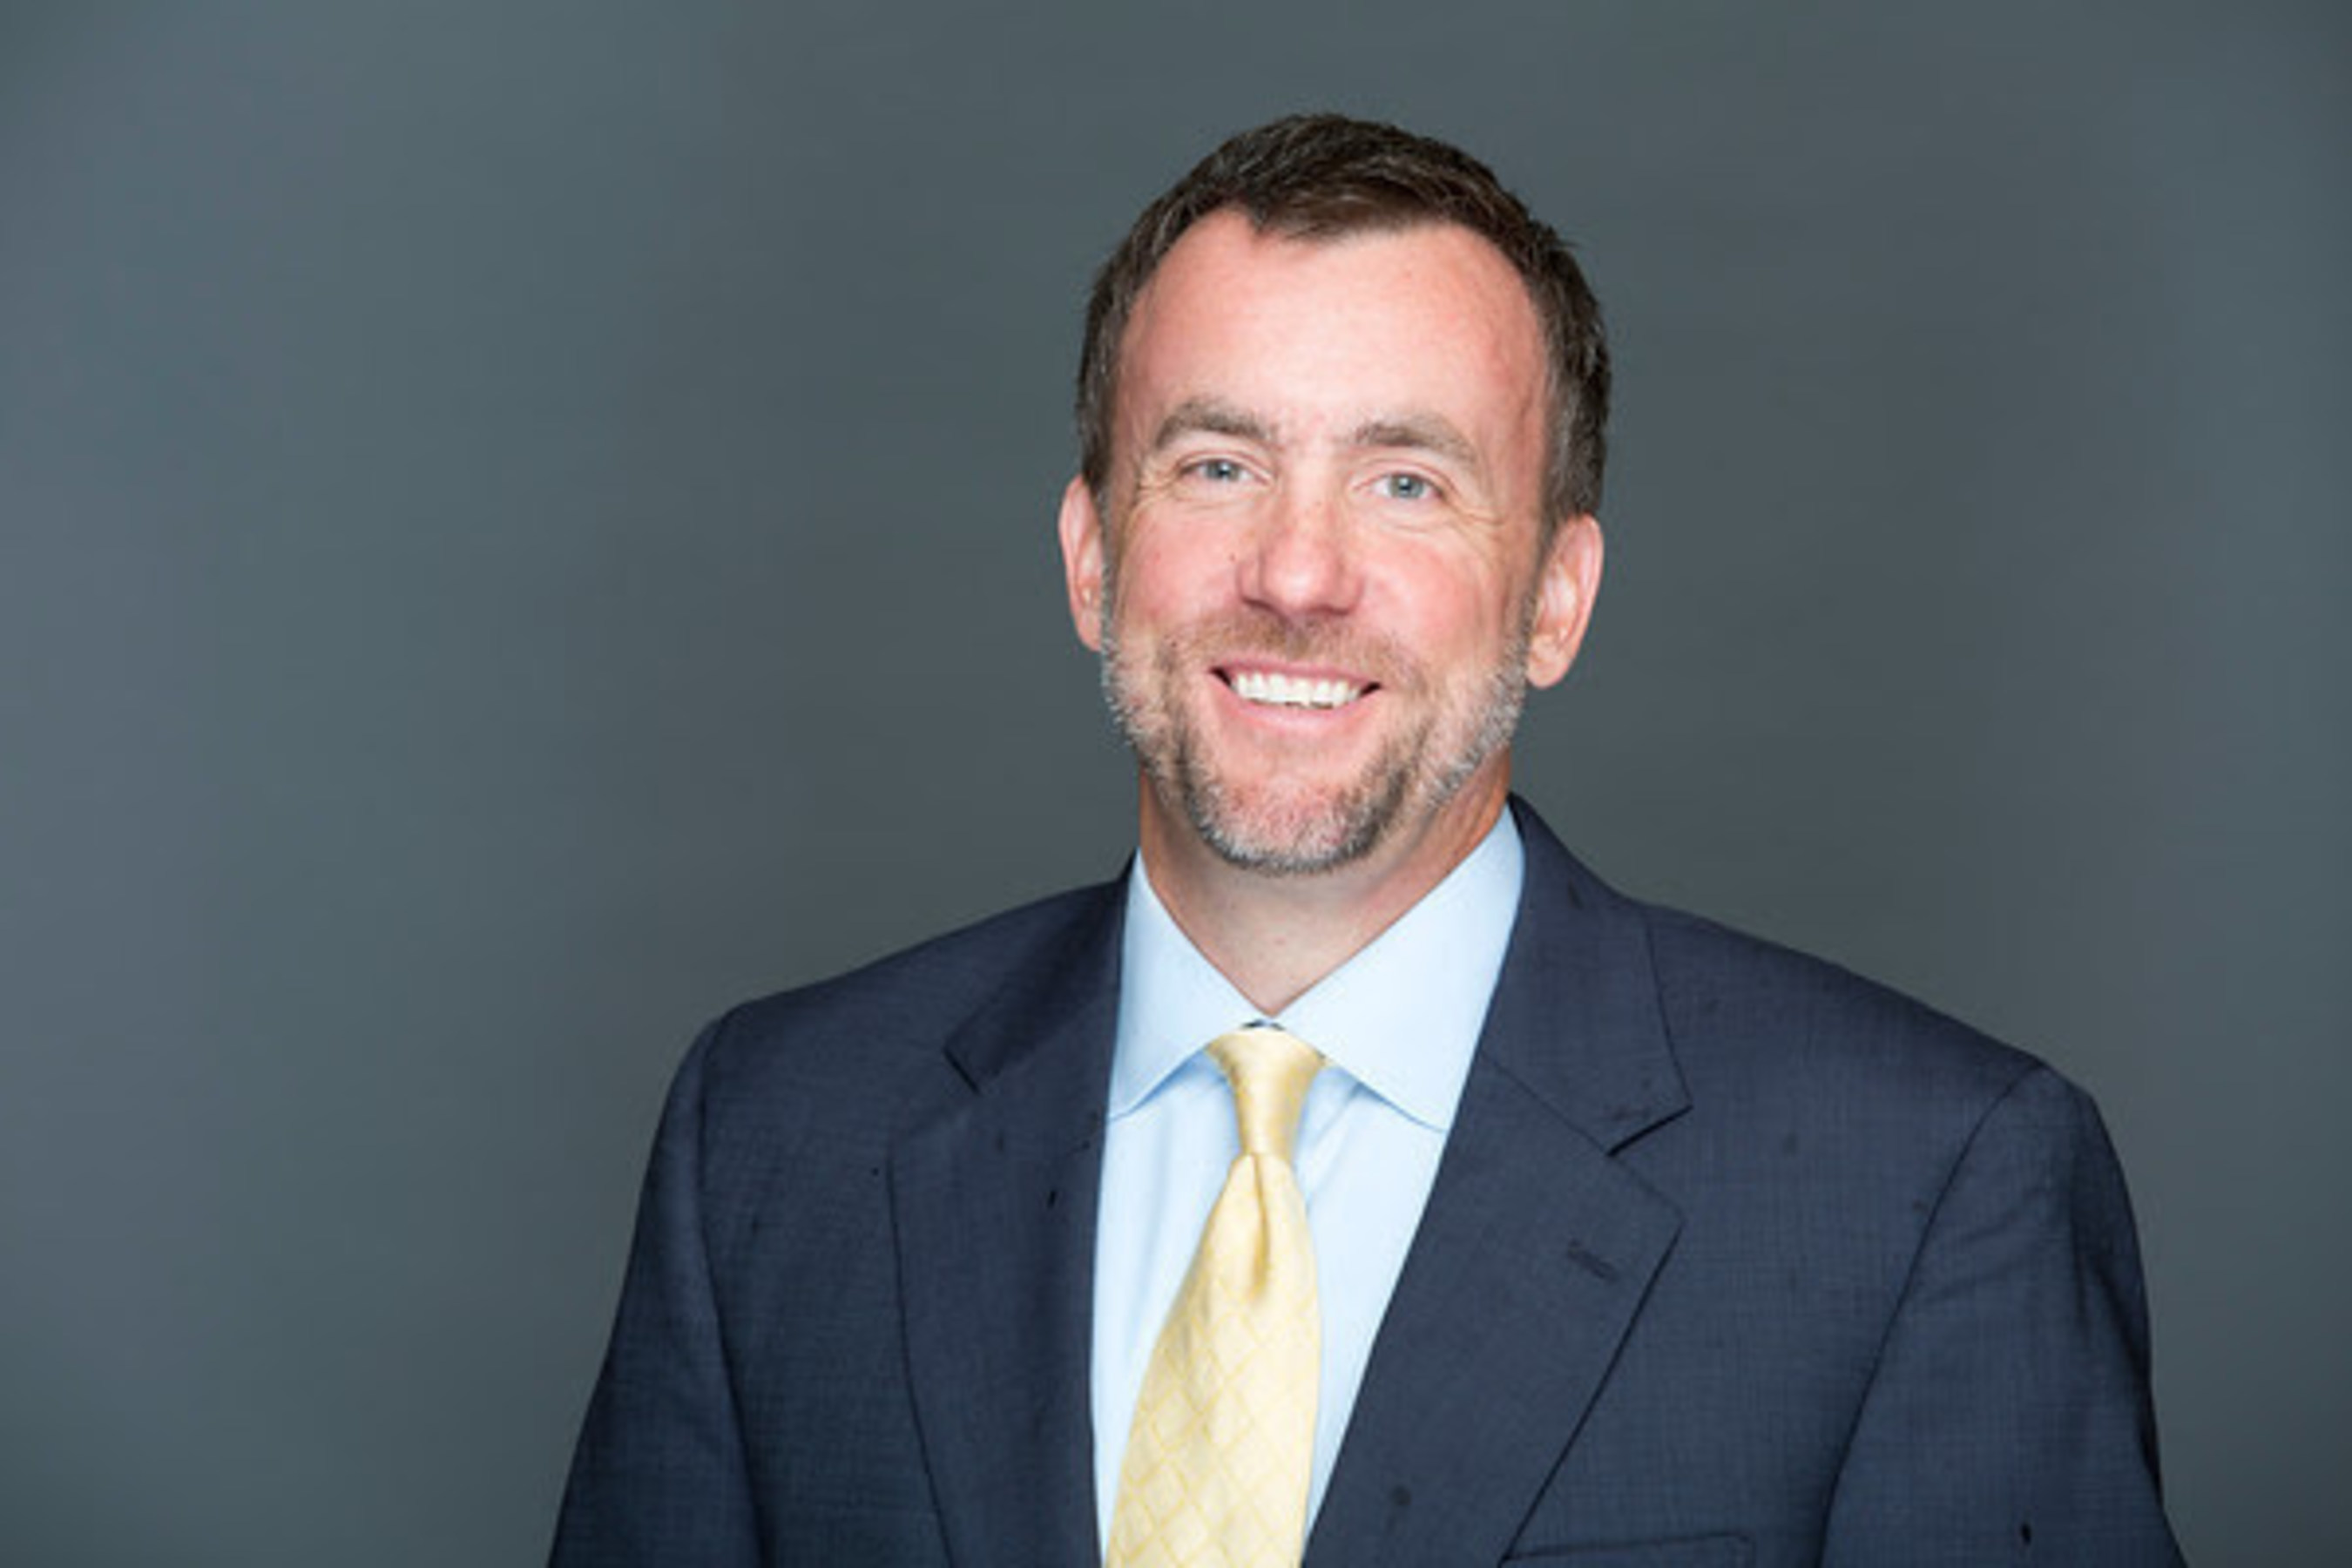 PruittHealth announces that Mr. Kevin Brenan has joined the organization as Senior Vice President of Finance.